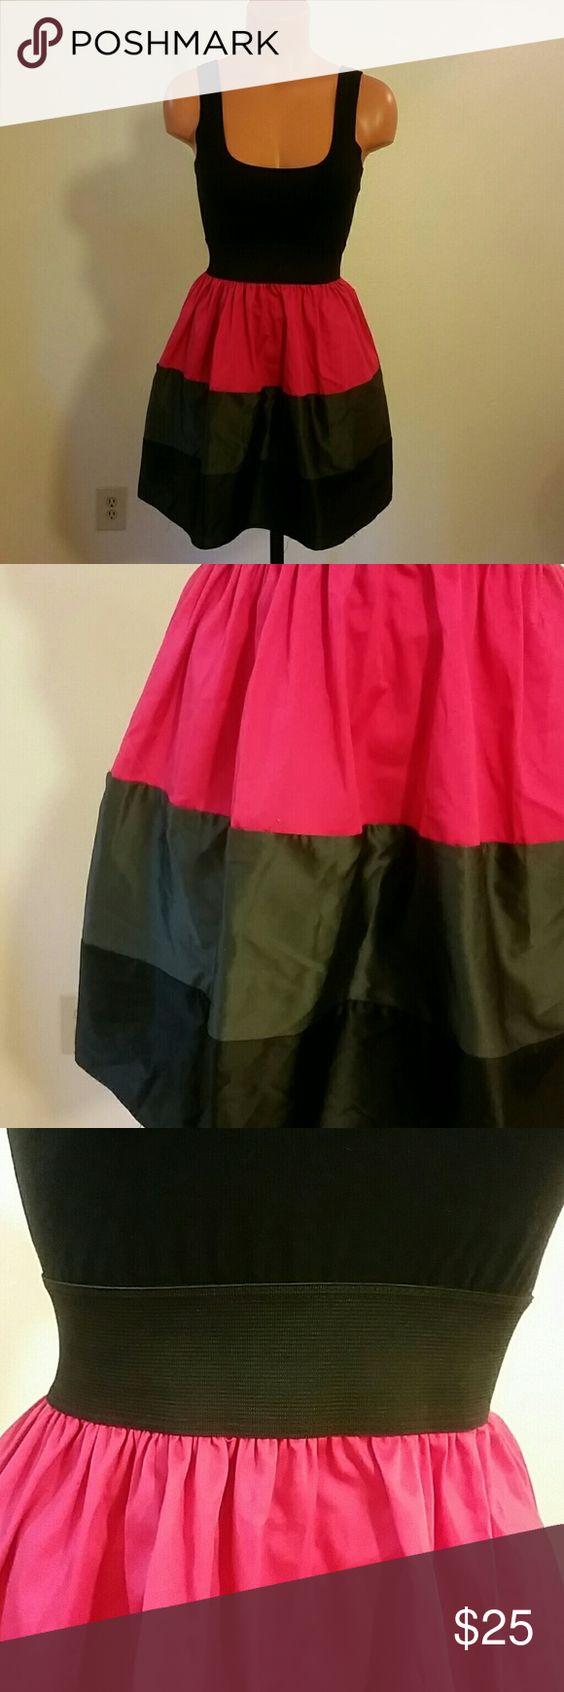 Color block party dress - Color Block Party Dress Hot Pink Black And Silver Gray Colorblock Party Dress